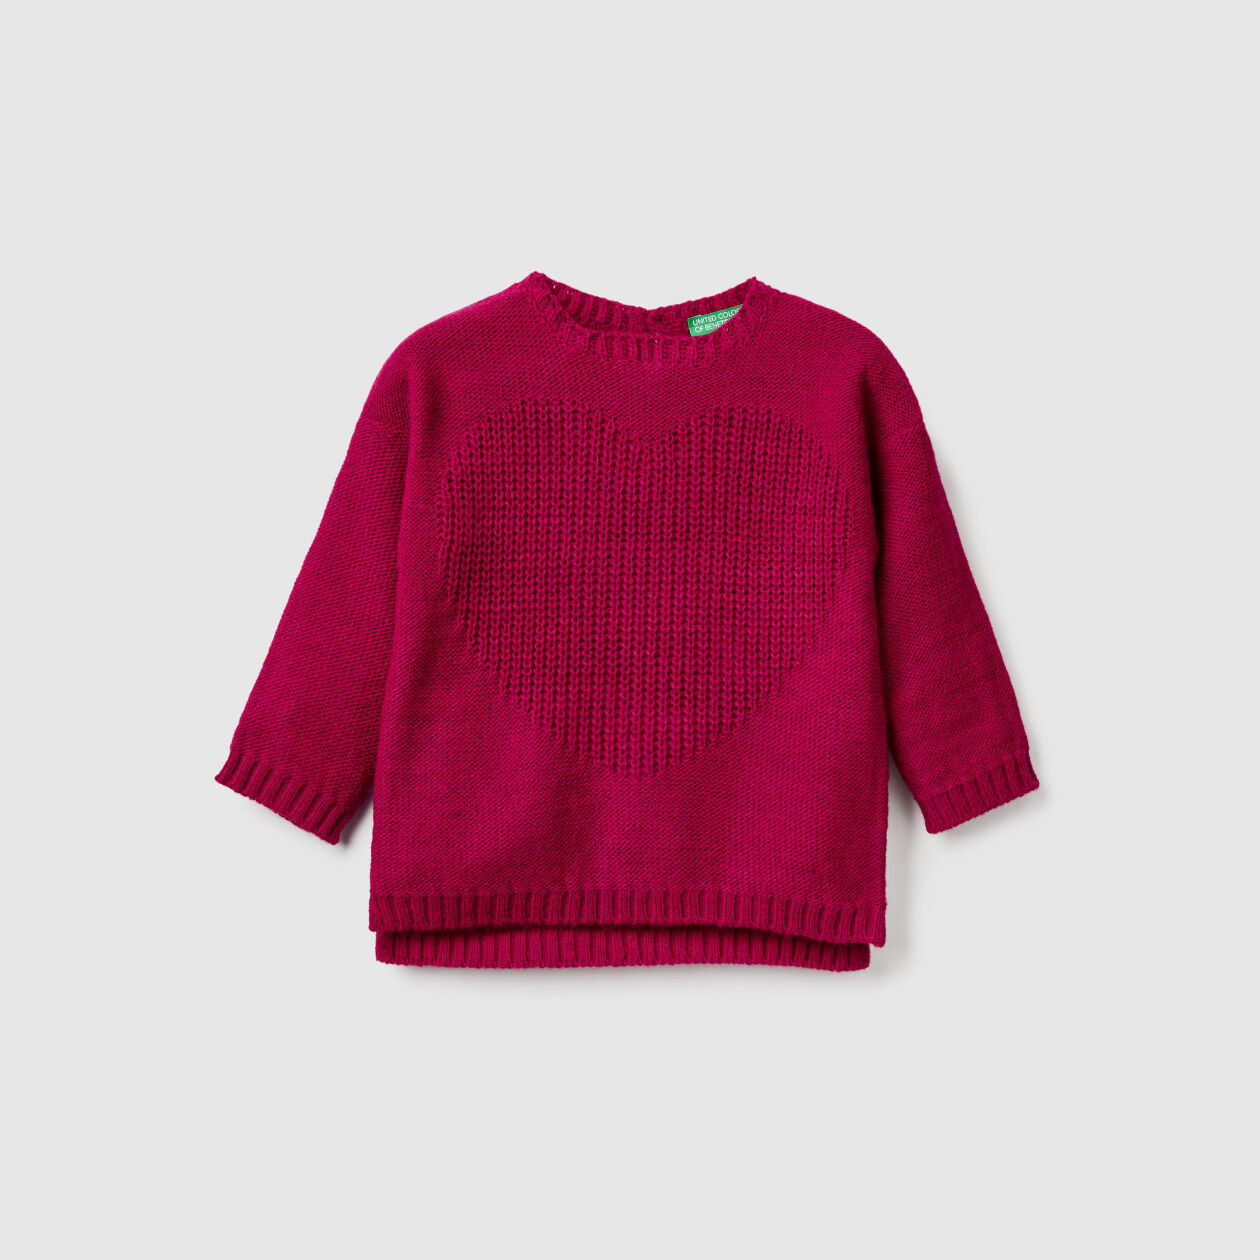 Sweater with heart motif